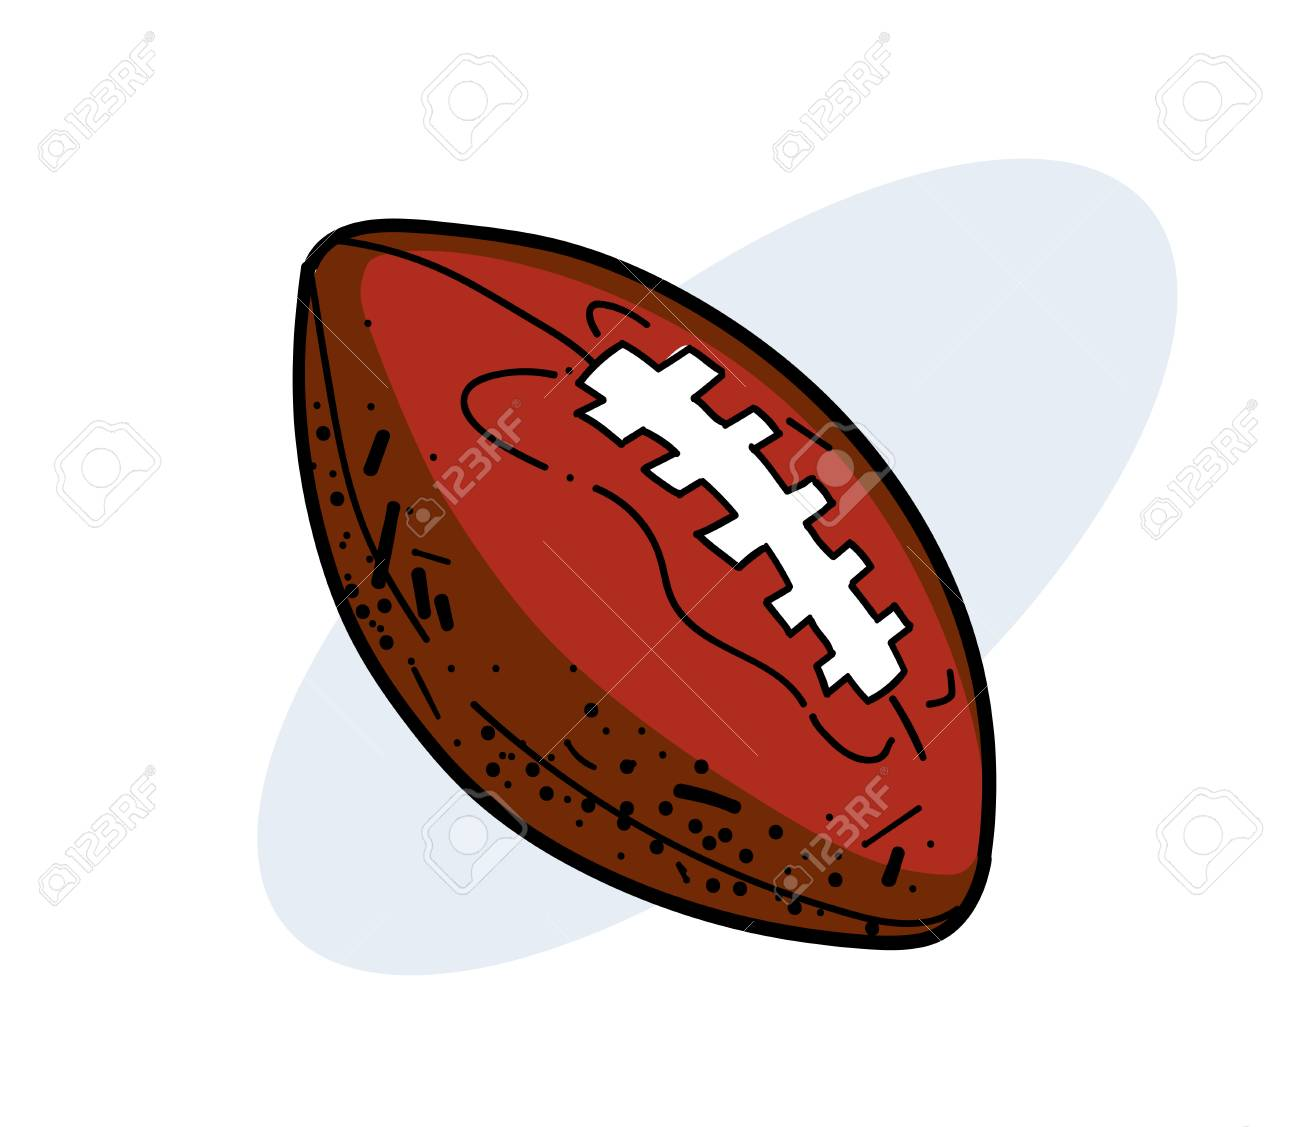 Rugby Ball Hand Drawn Image Royalty Free Cliparts Vectors And Stock Illustration Image 86999094